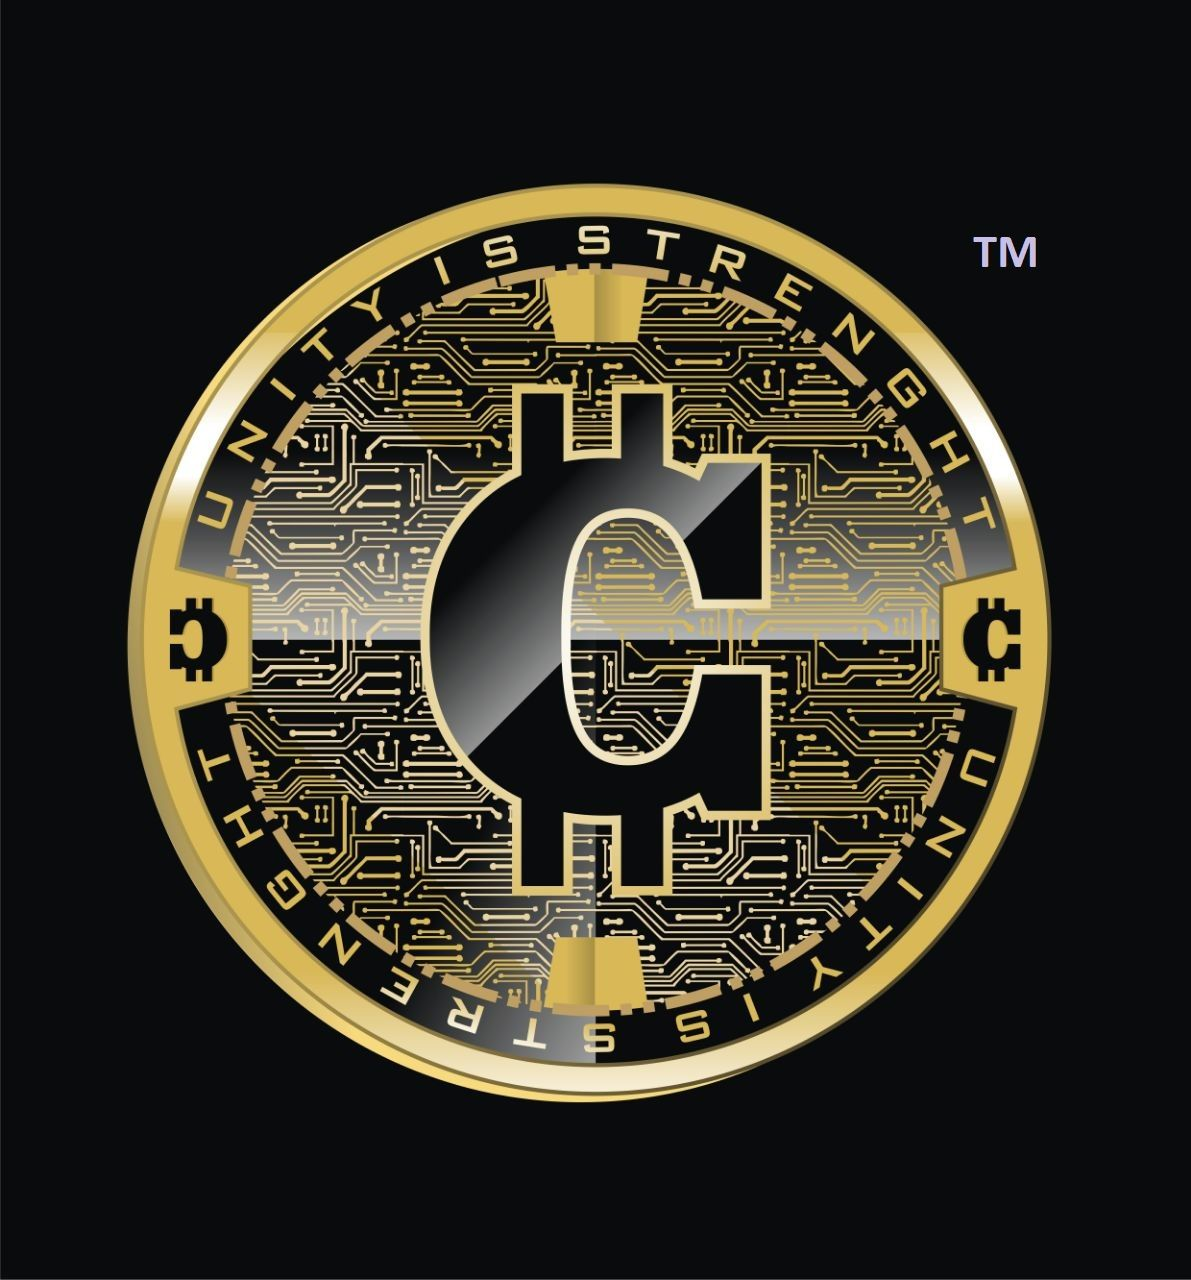 Crypto Universe is a legal entity registered as a